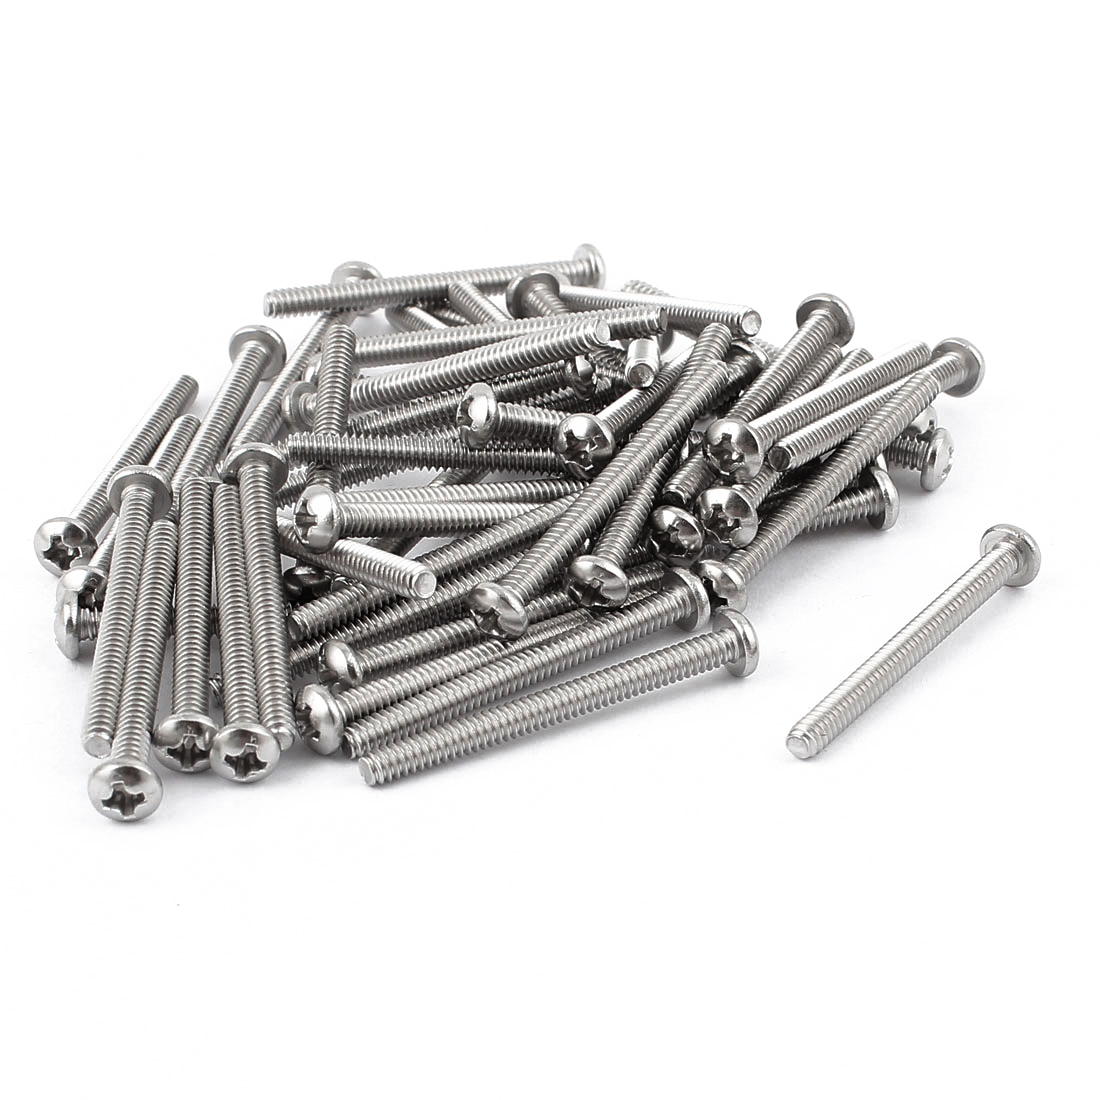 "50 Pcs #6-32 x 1 1/2"" Phillips Truss Head Machine Screws Fasteners 40mm Long"